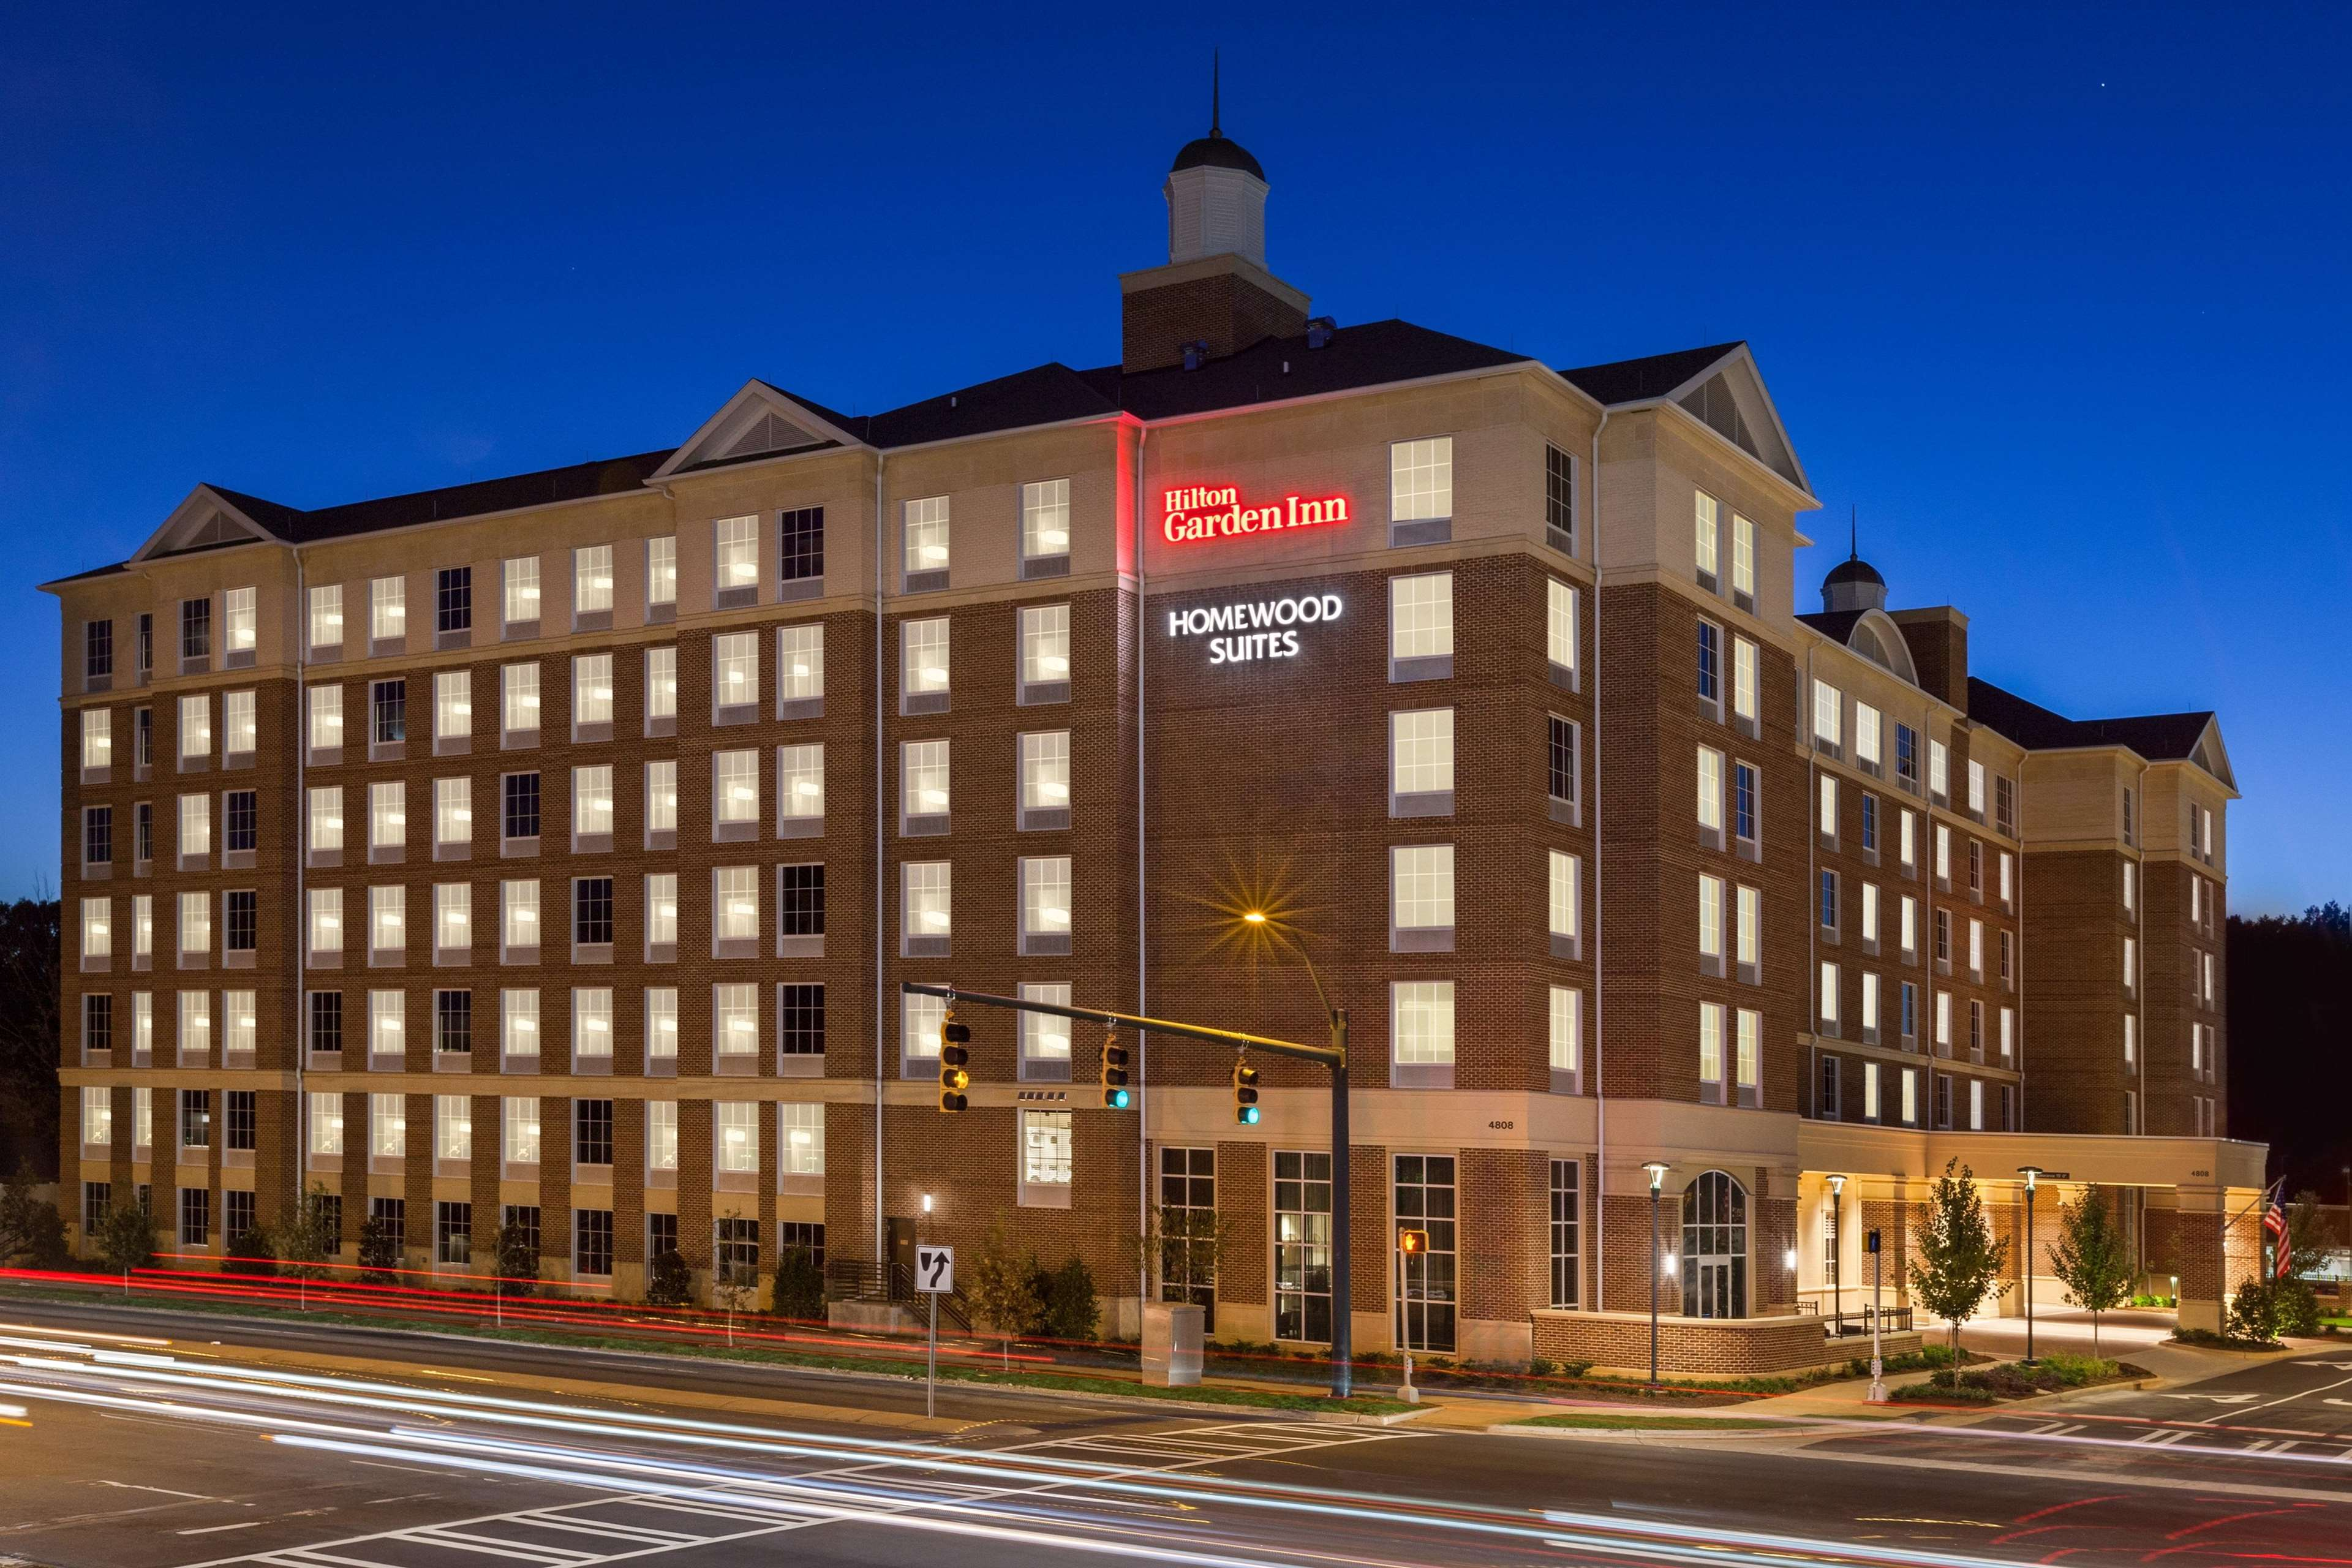 Homewood suites by hilton charlotte southpark charlotte for In home suites